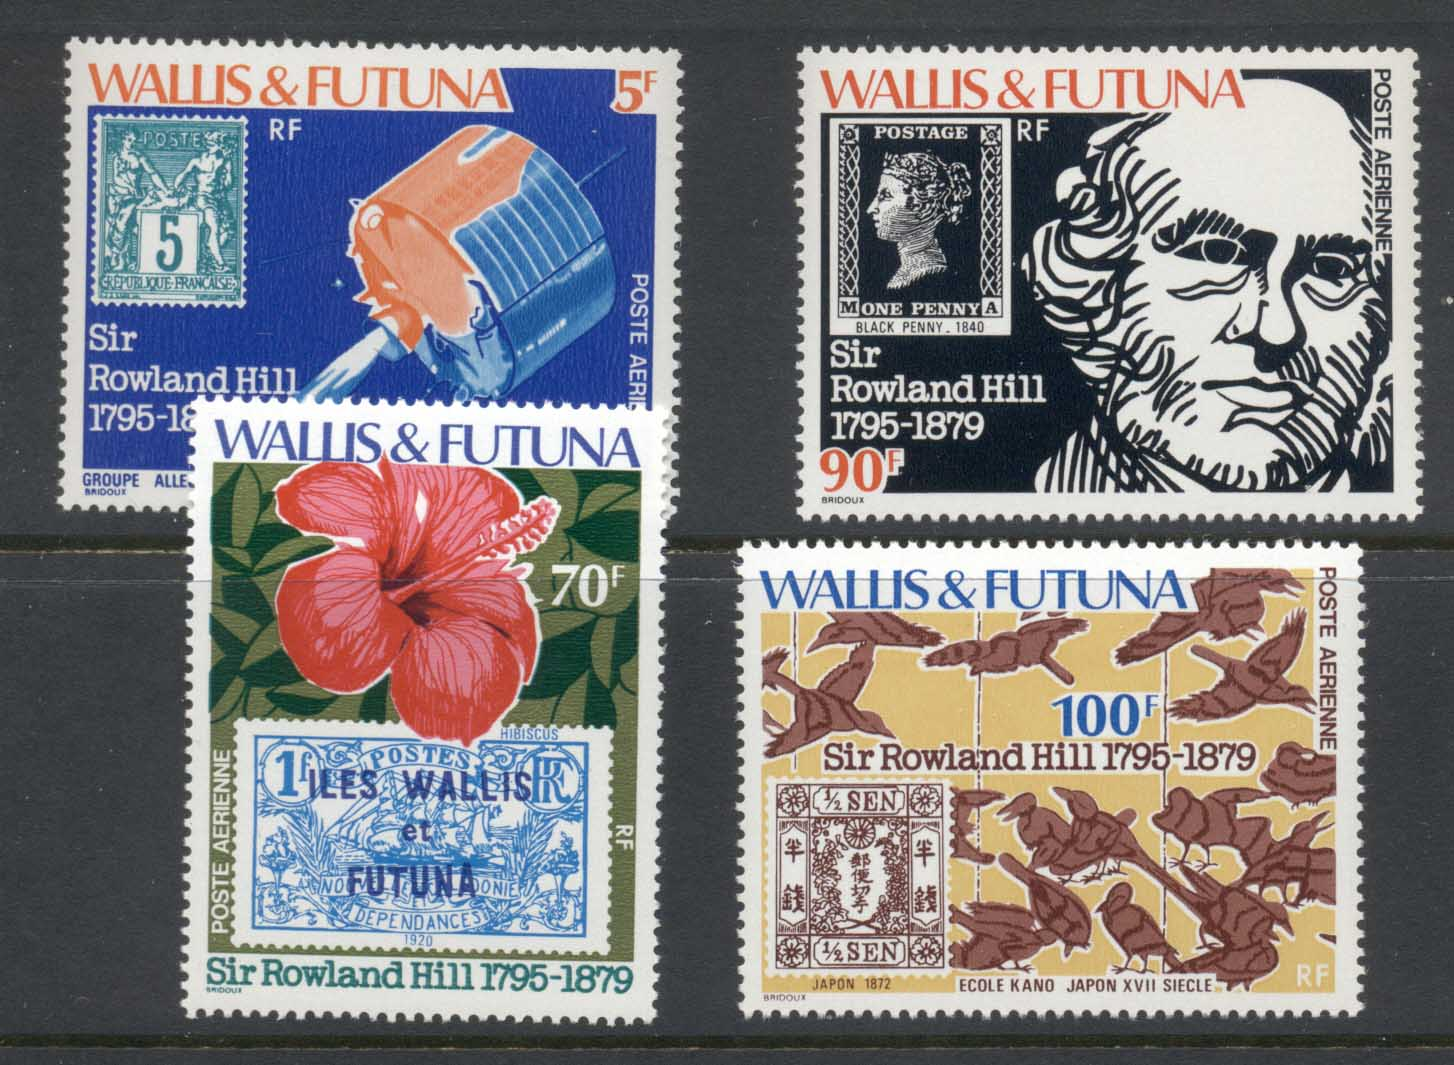 Wallis & Futuna 1979 Sir Rowland Hill Death Centenary MUH